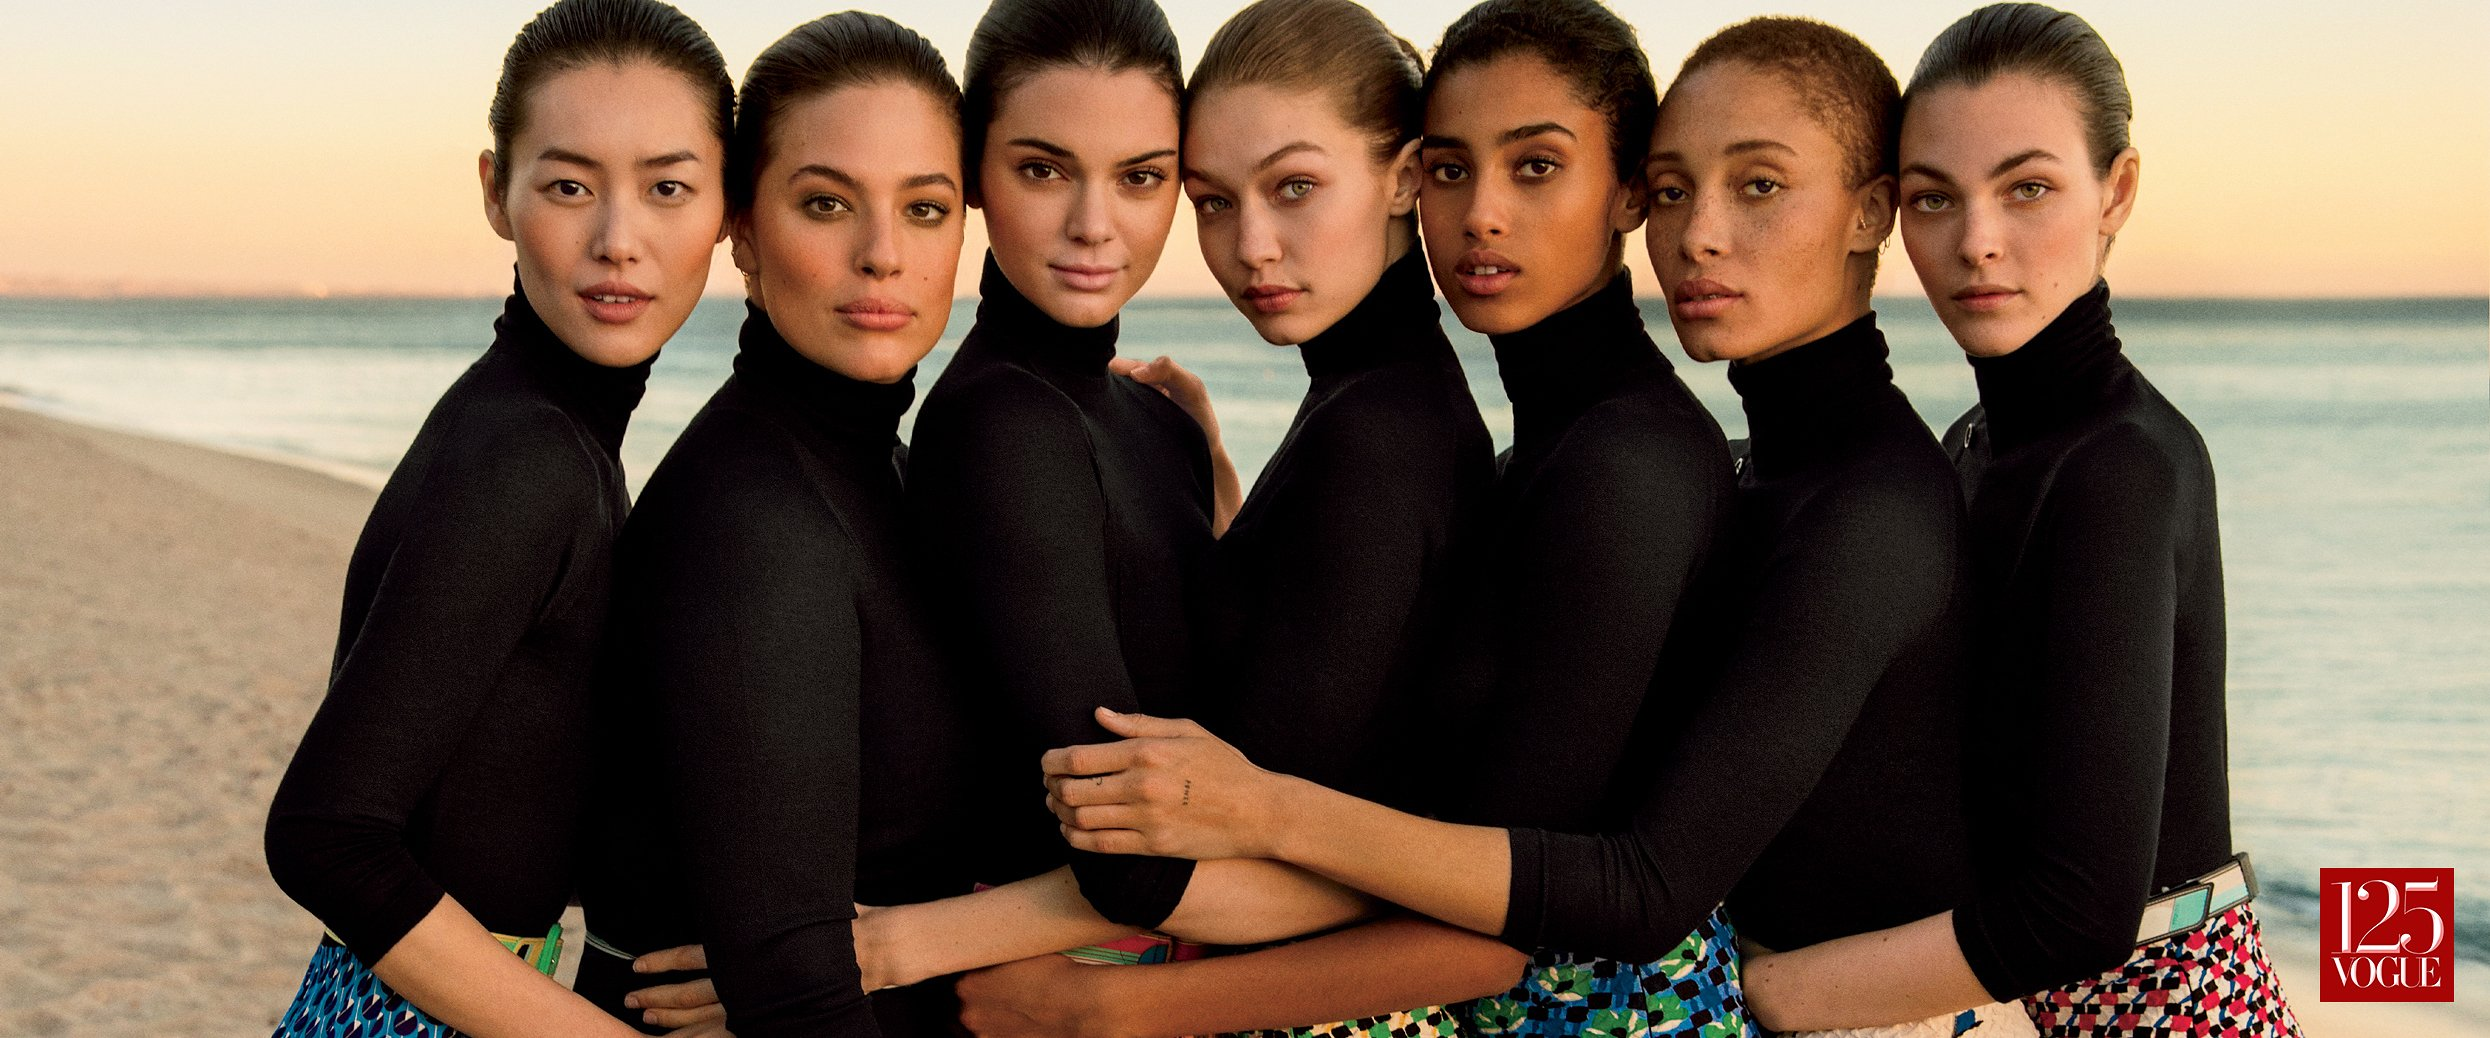 Vogue diversity cover.jpeg